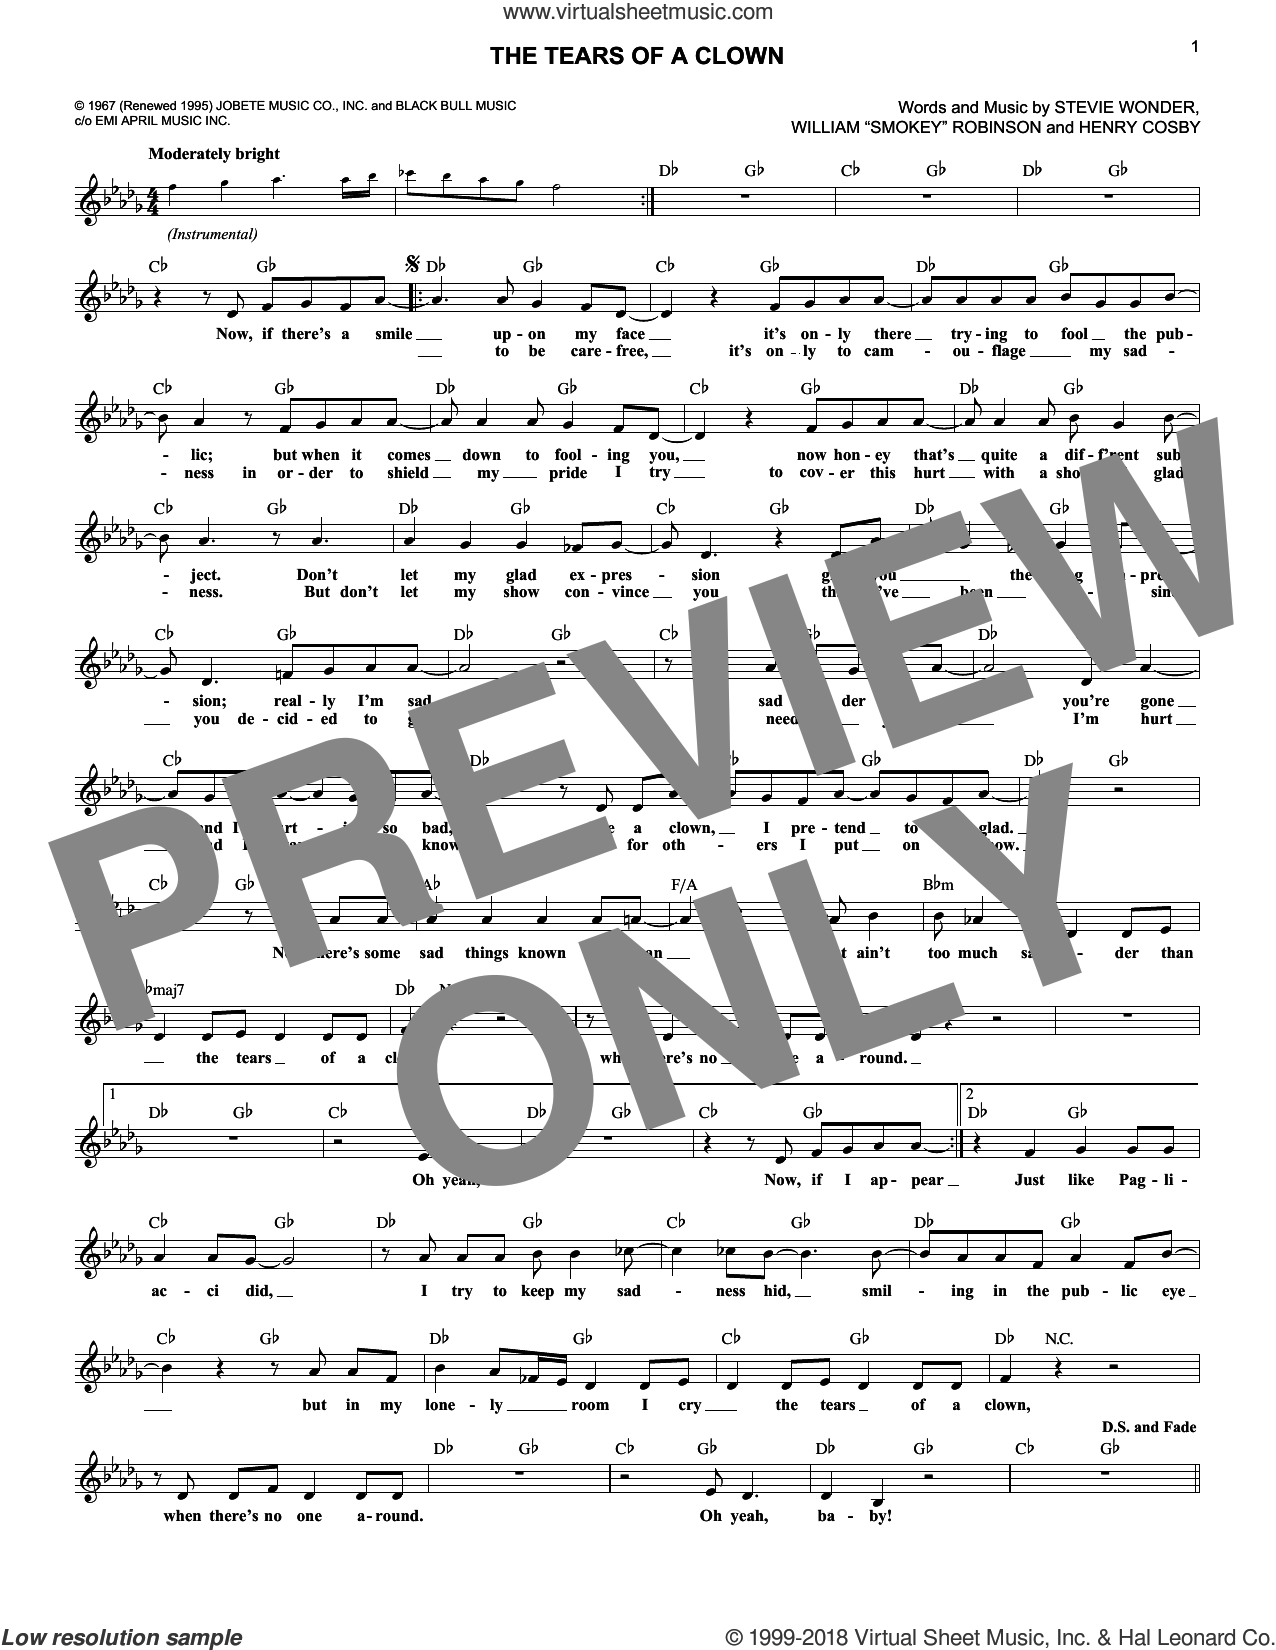 The Tears Of A Clown sheet music for voice and other instruments (fake book) by Smokey Robinson & The Miracles, Henry Cosby and Stevie Wonder, intermediate. Score Image Preview.